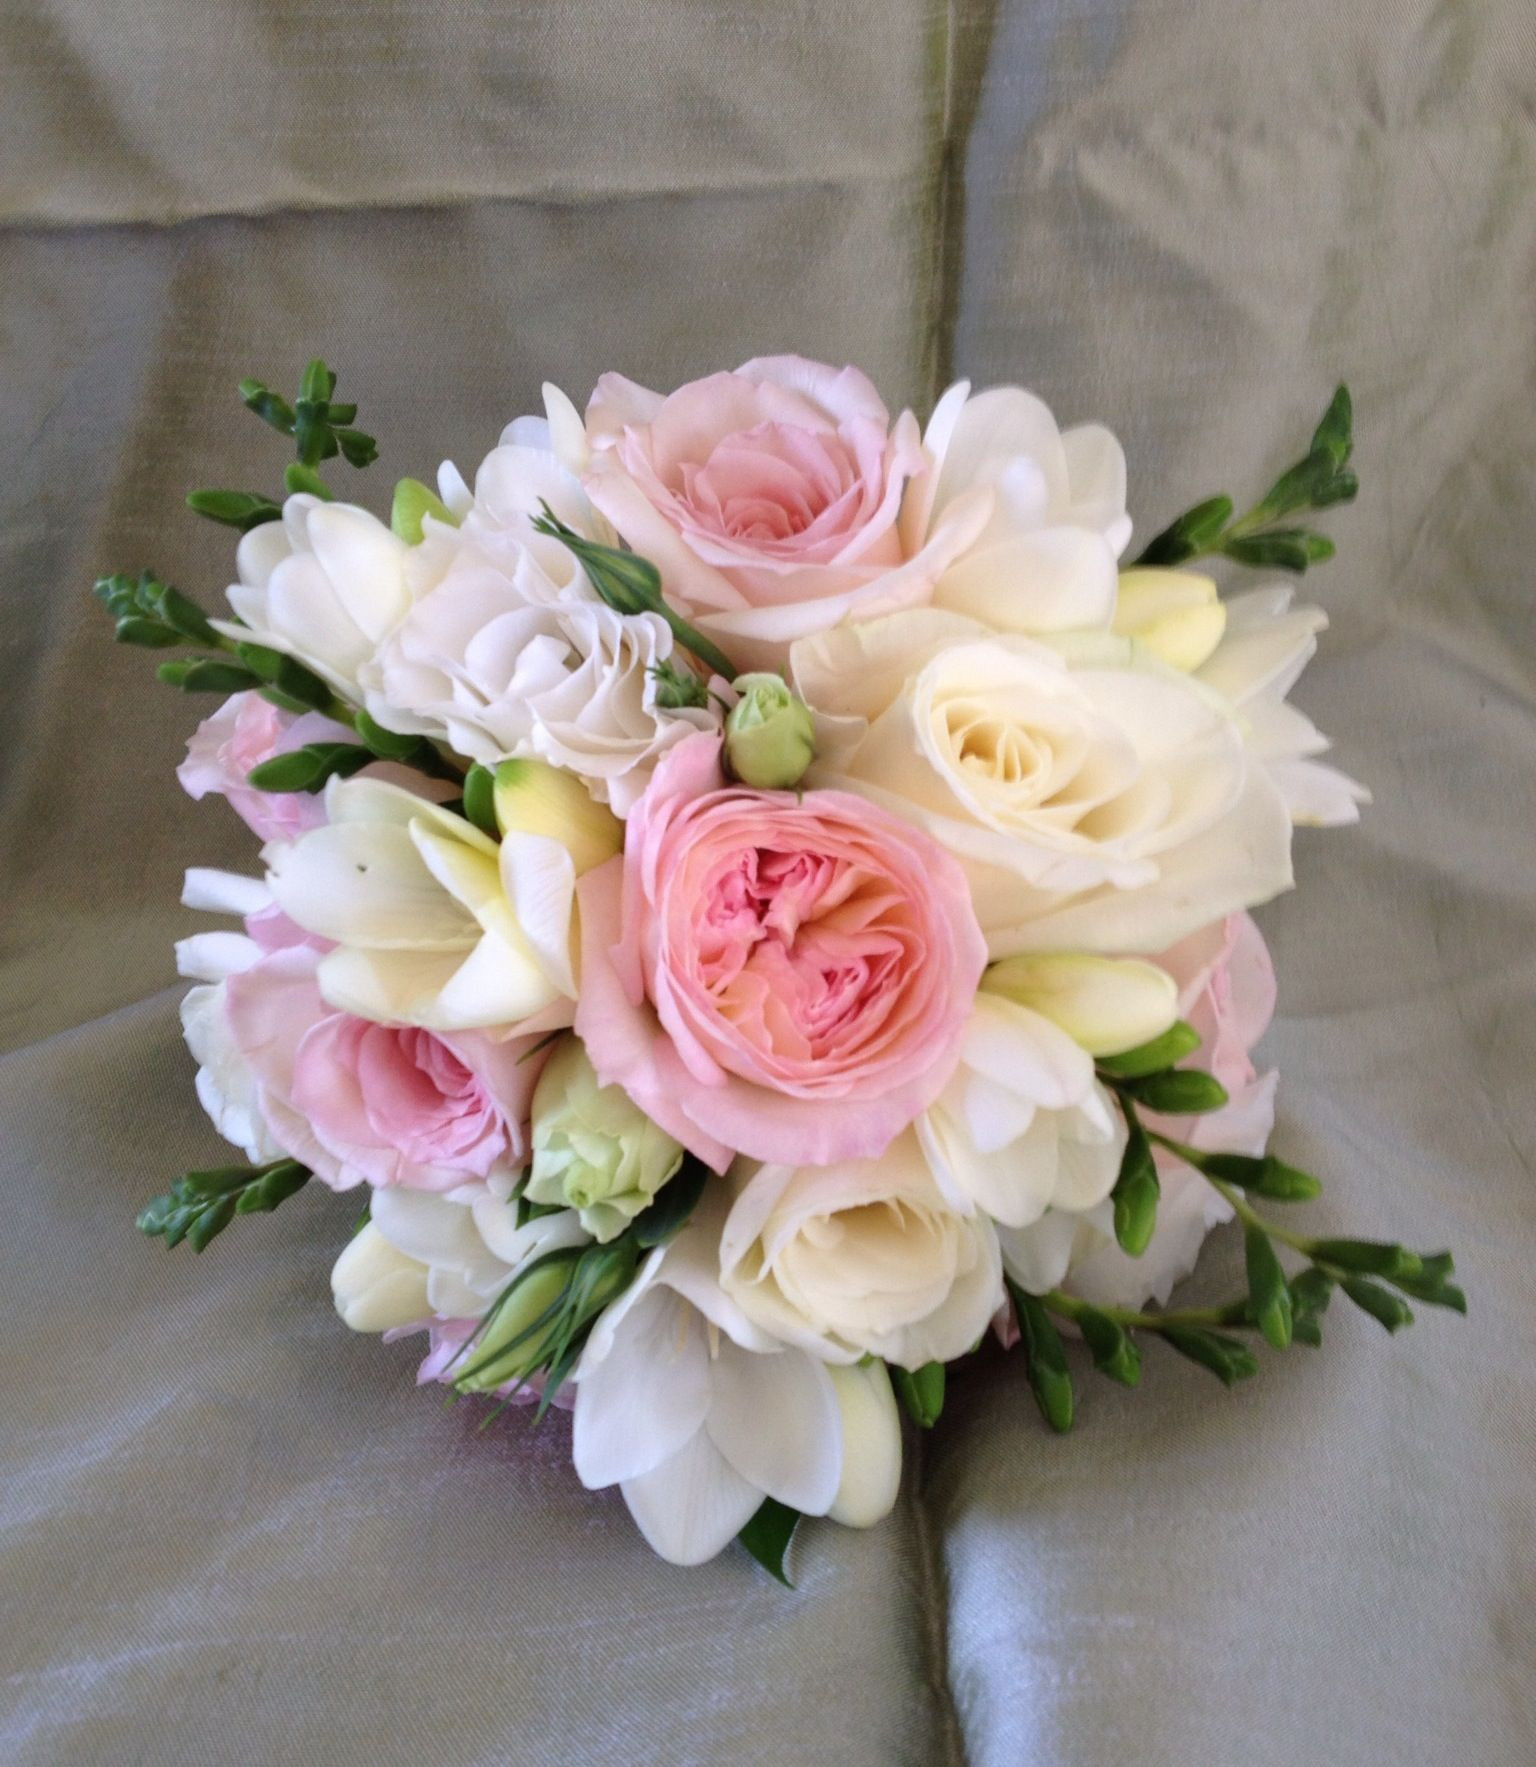 Best Flowers Austin Beautiful David Austin Roses Freesias and Lisianthus Lisianthus